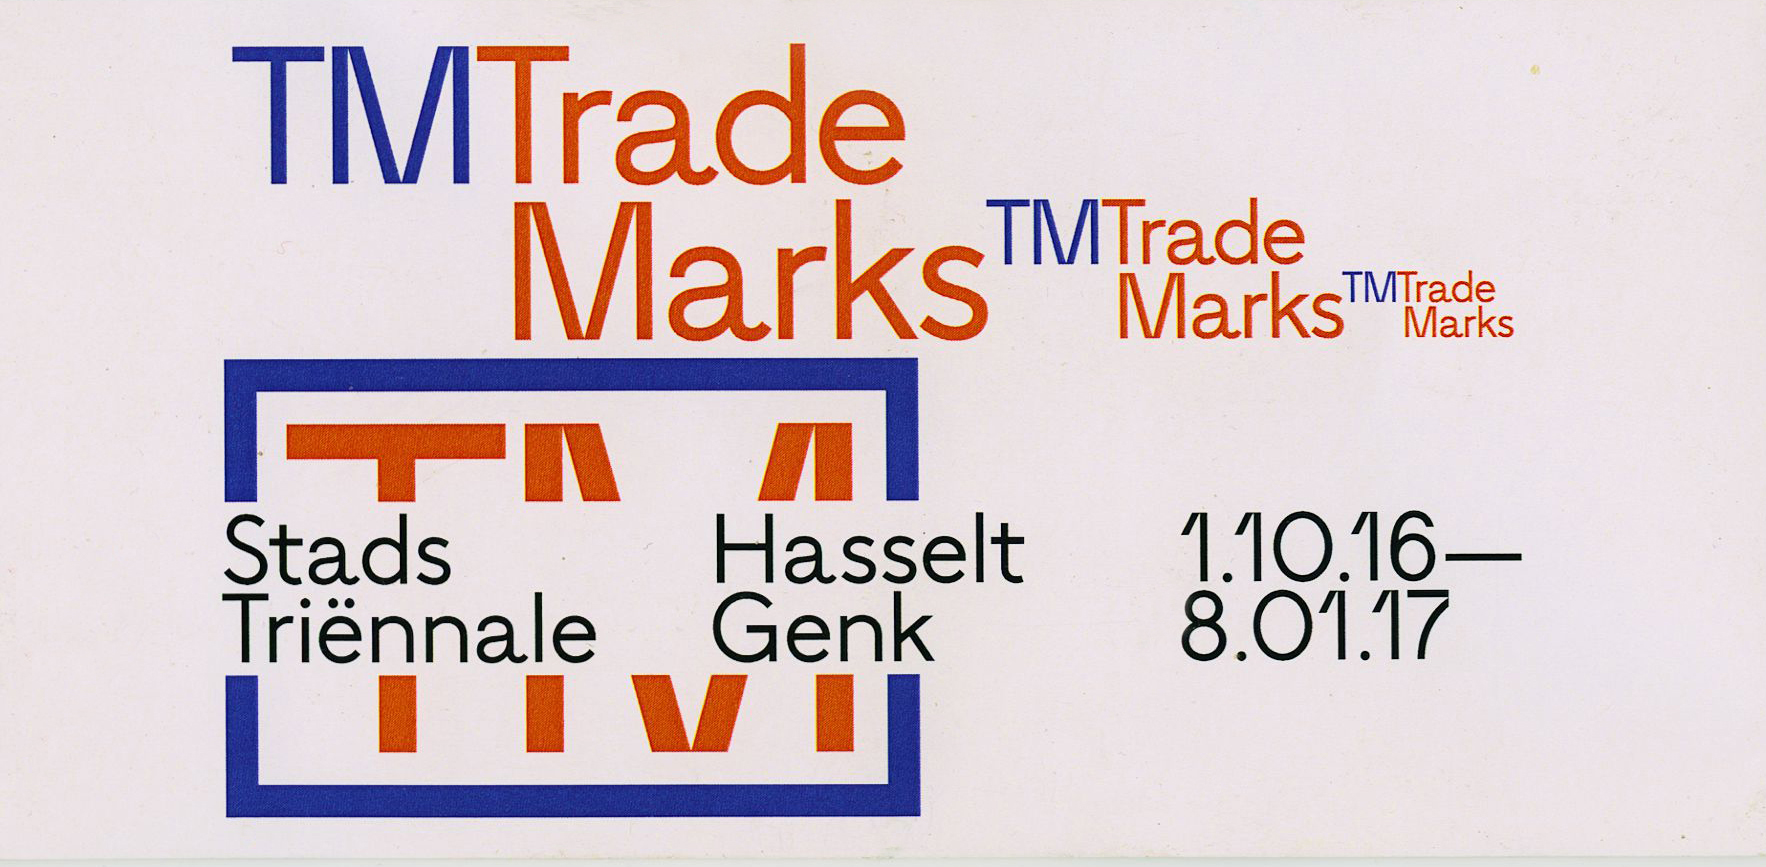 TM Trade Marks expo 2016 A